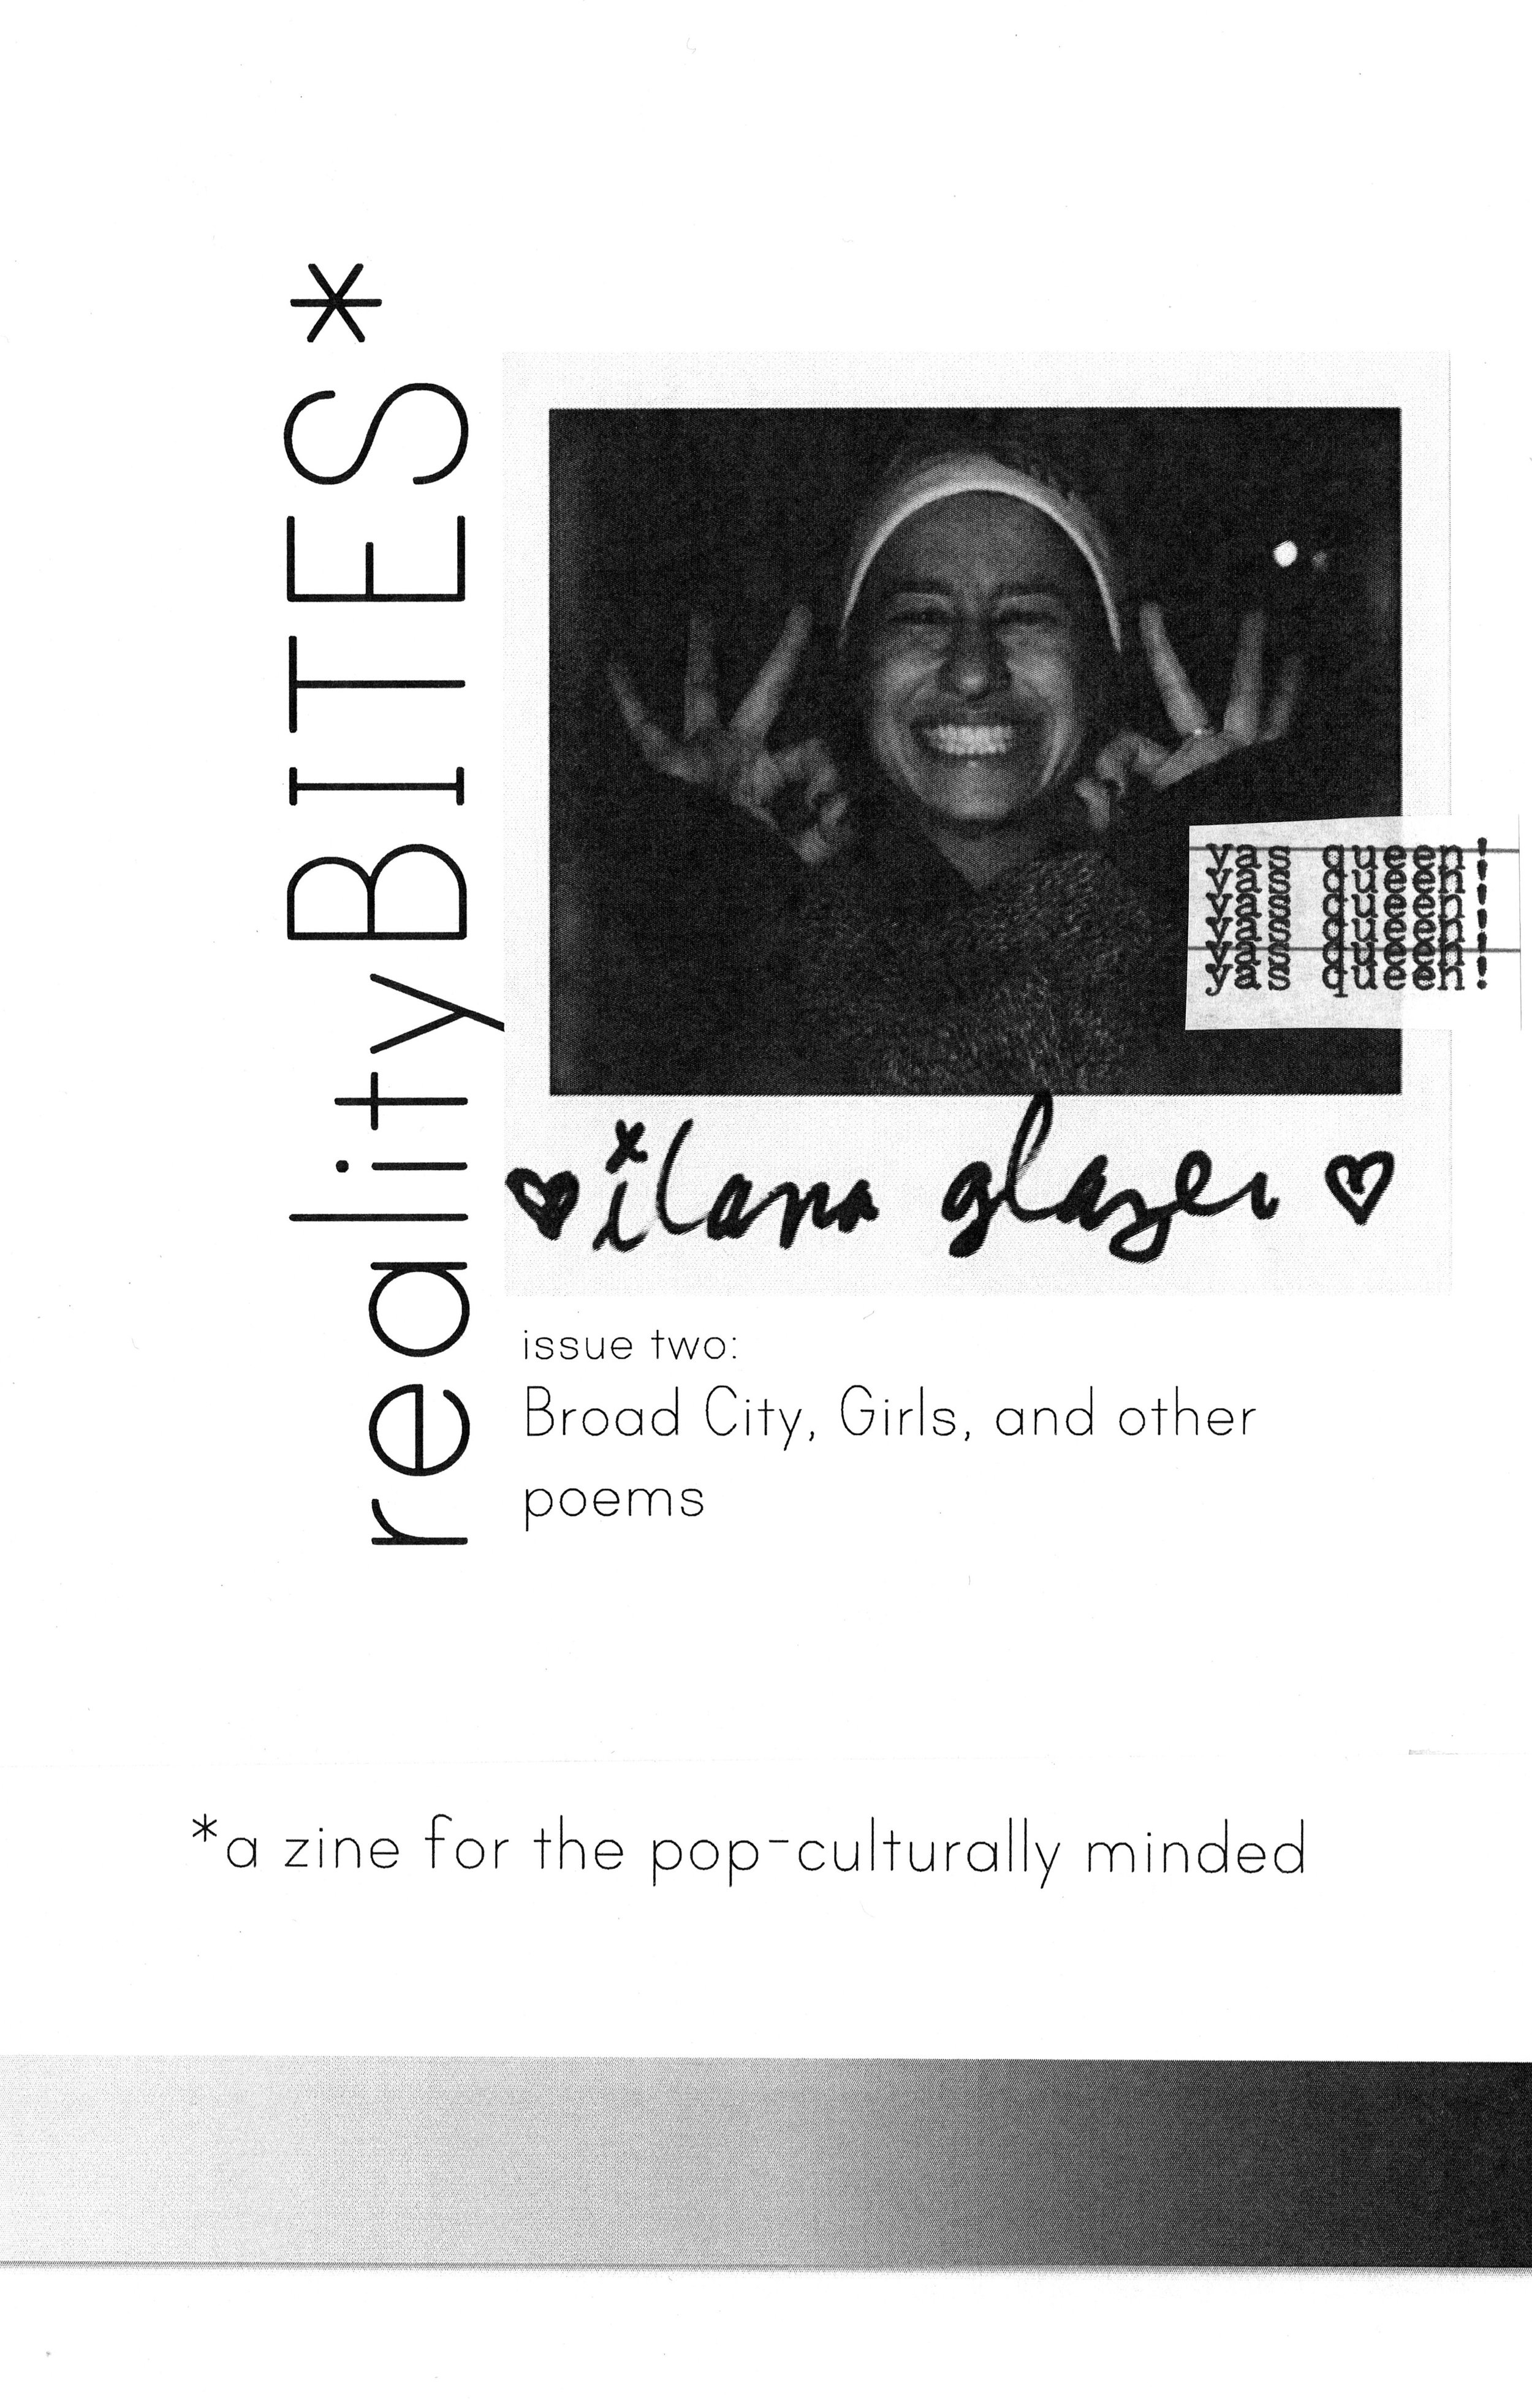 realityBITES | issue 2 - broad city, girls, and other poems